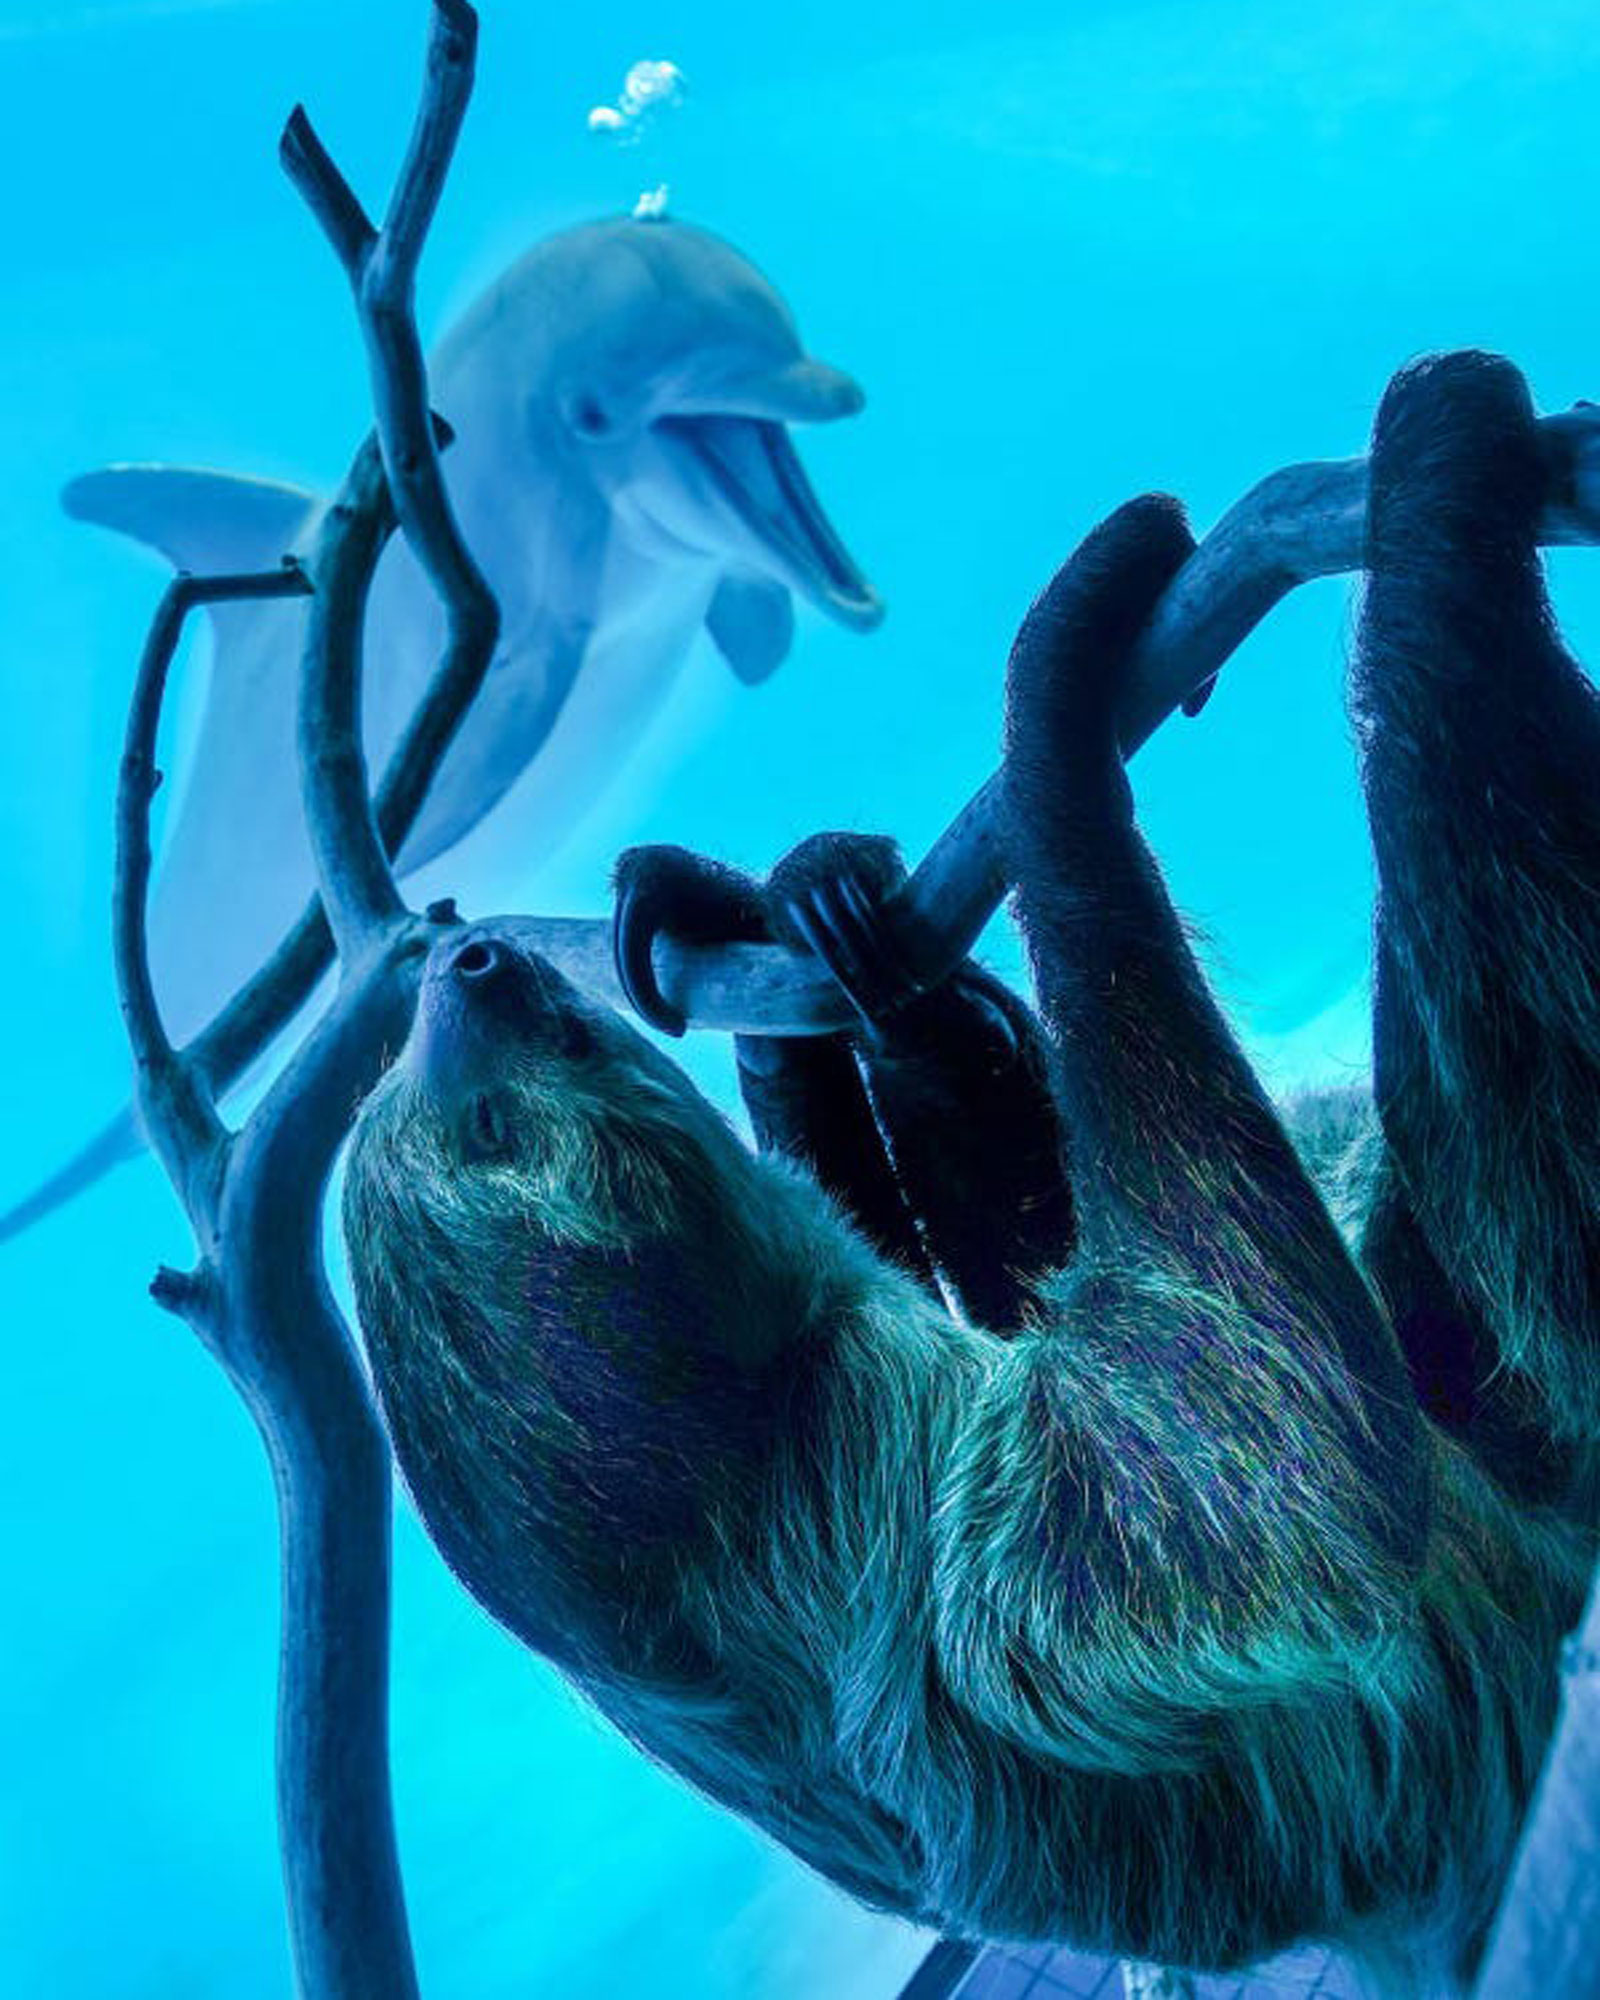 Dolphin approaching a sloth